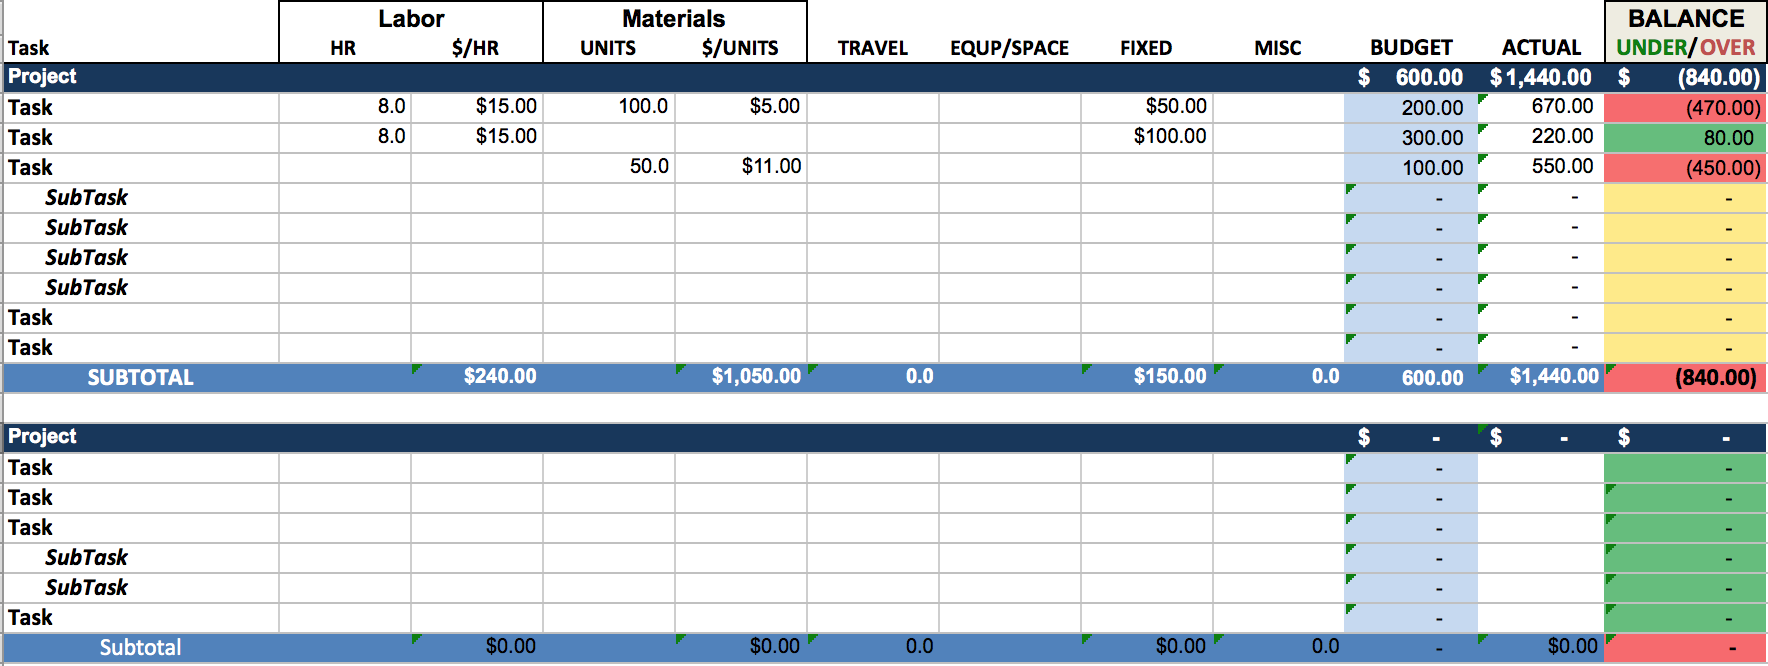 Sample Of Project Budget Plan Template Excel With Project Budget Plan Template Excel Example